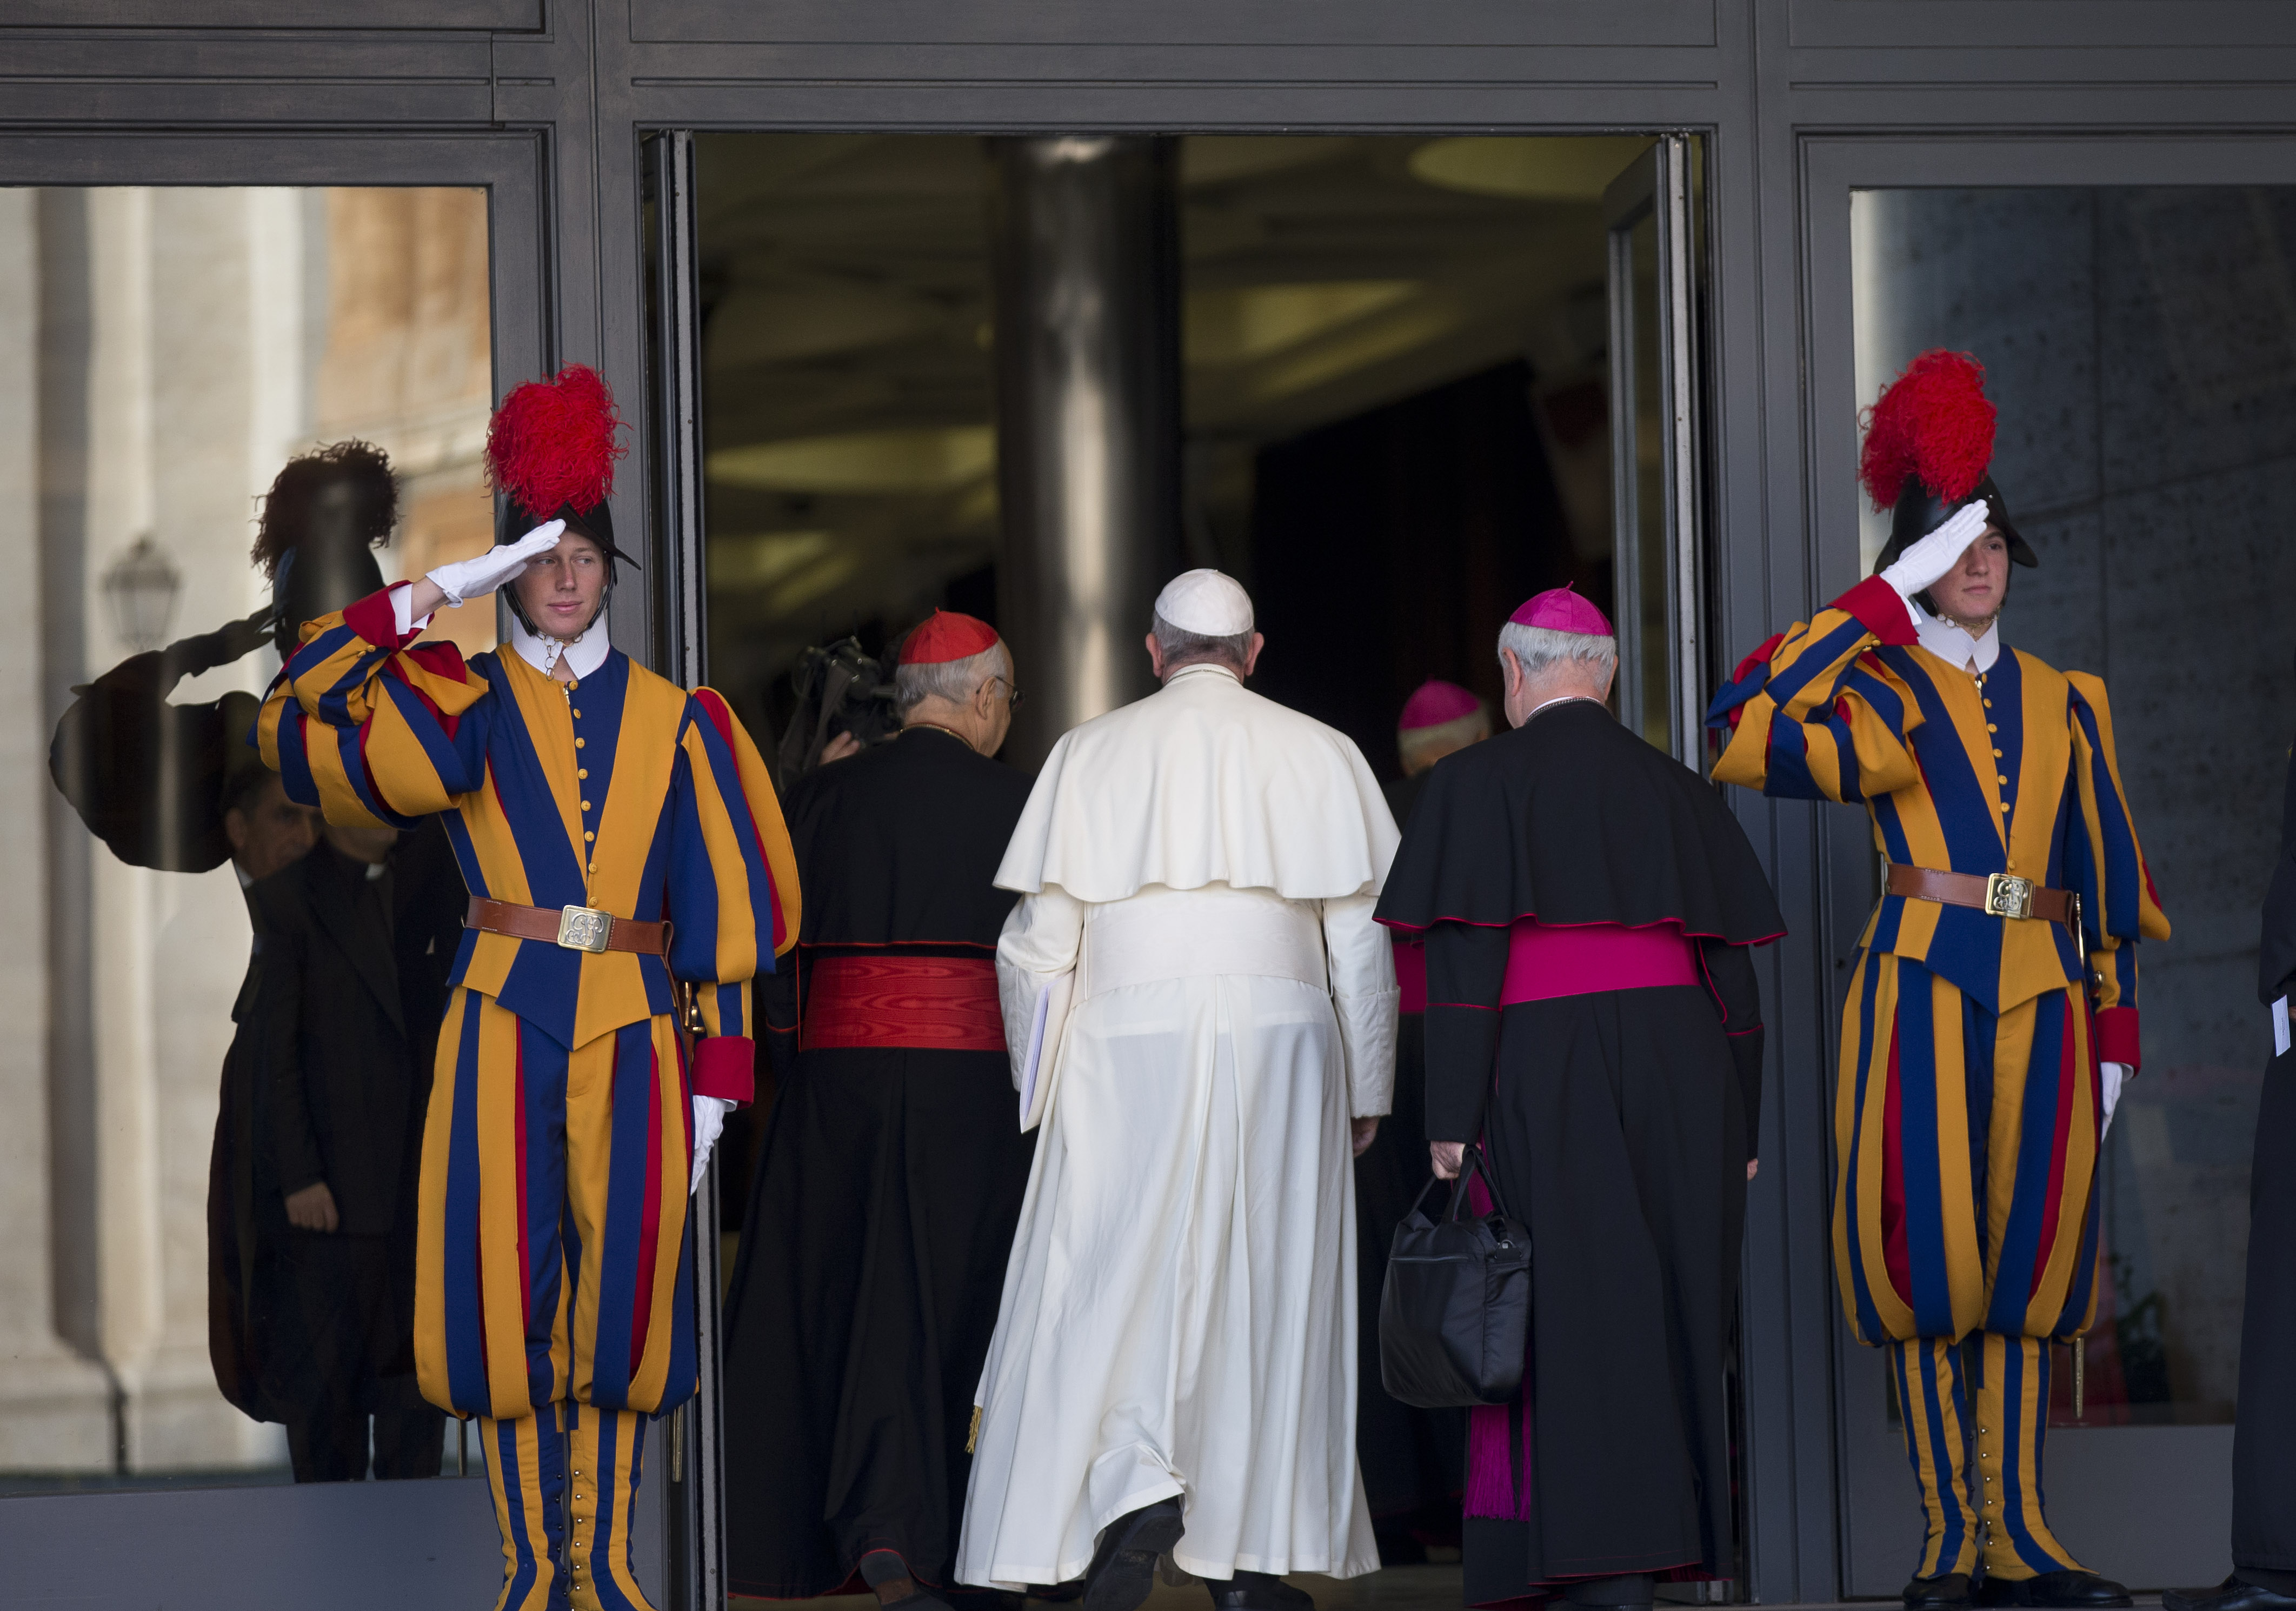 Vatican Swiss Guards stand on salute as Pope Francis arrives for the morning session of a two-week synod on family issues including contraception, pre-marital sex and divorce, at the Vatican, Oct. 6, 2014.